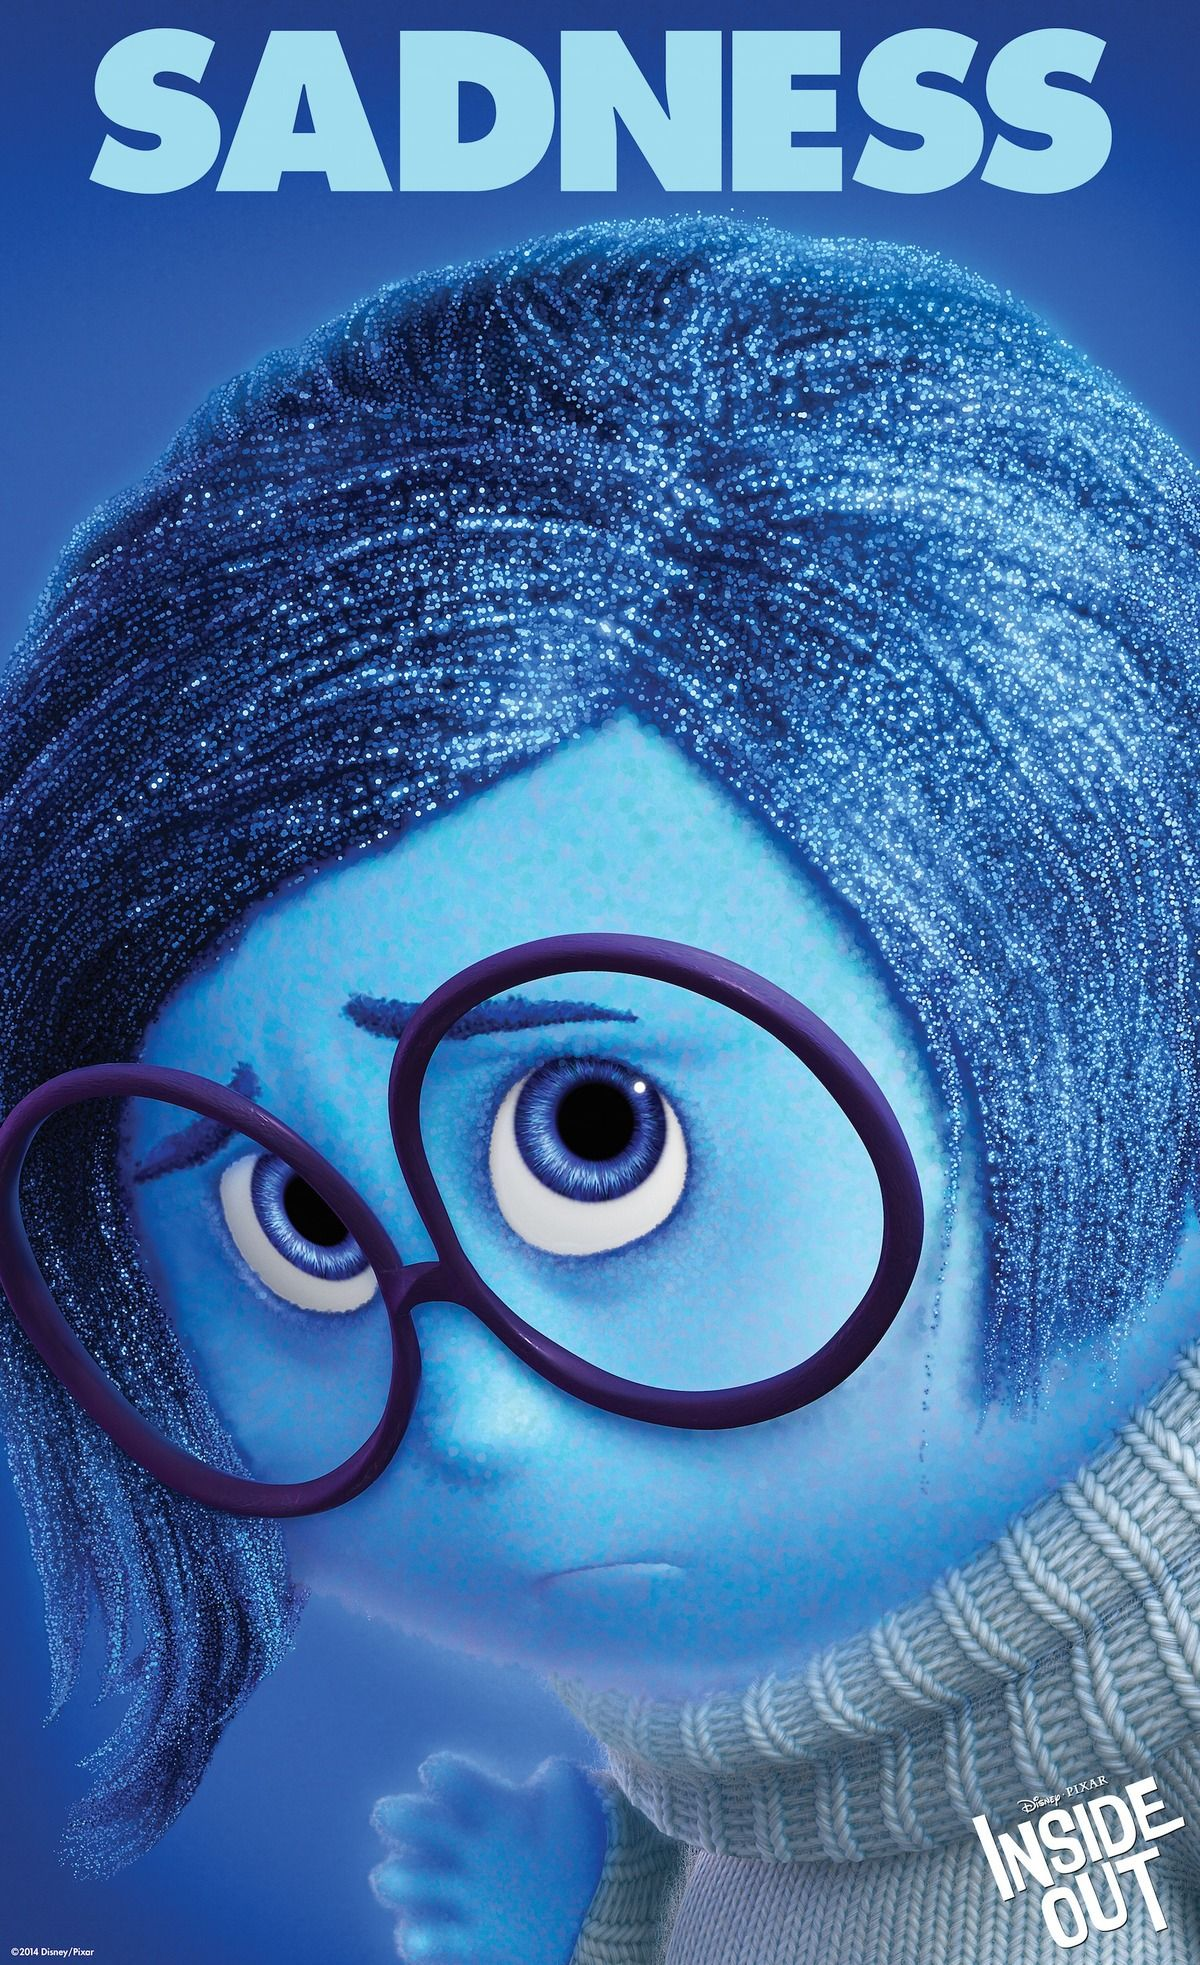 Sadness from Pixar's 'Inside Out'